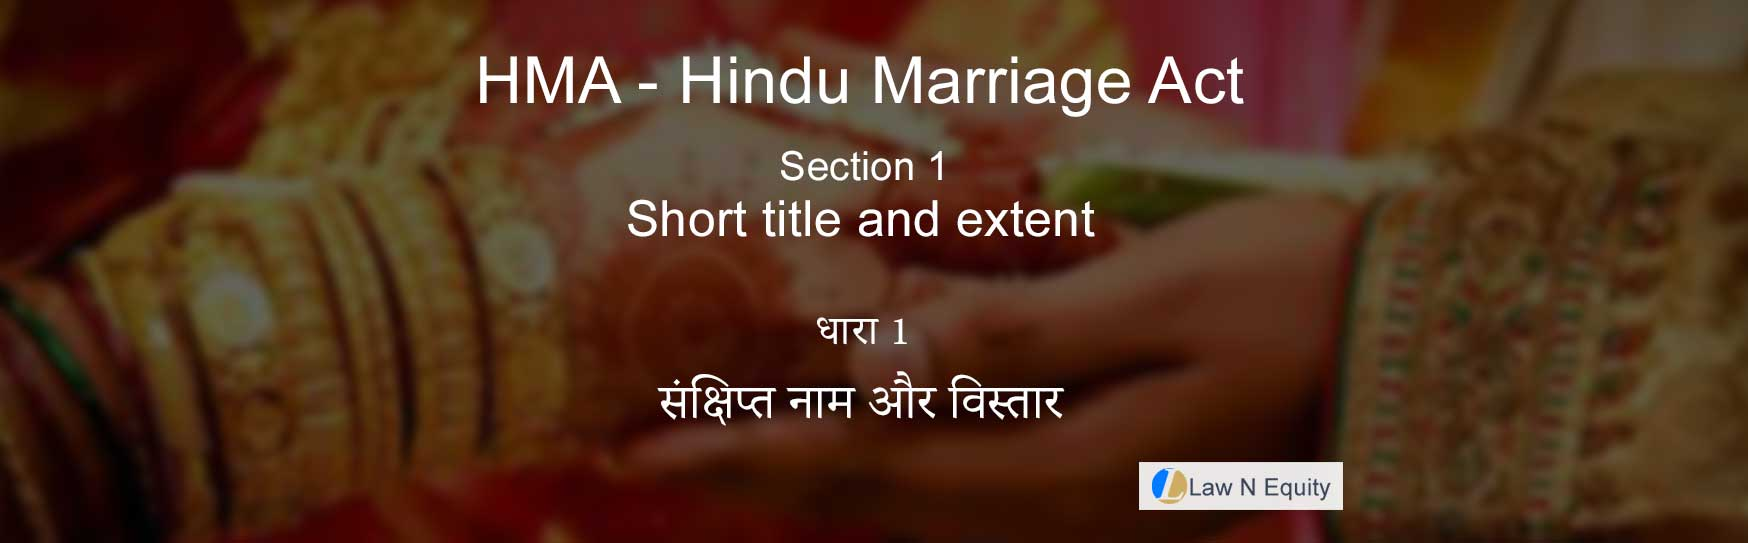 Hindu Marriage Act(HMA) Section 1